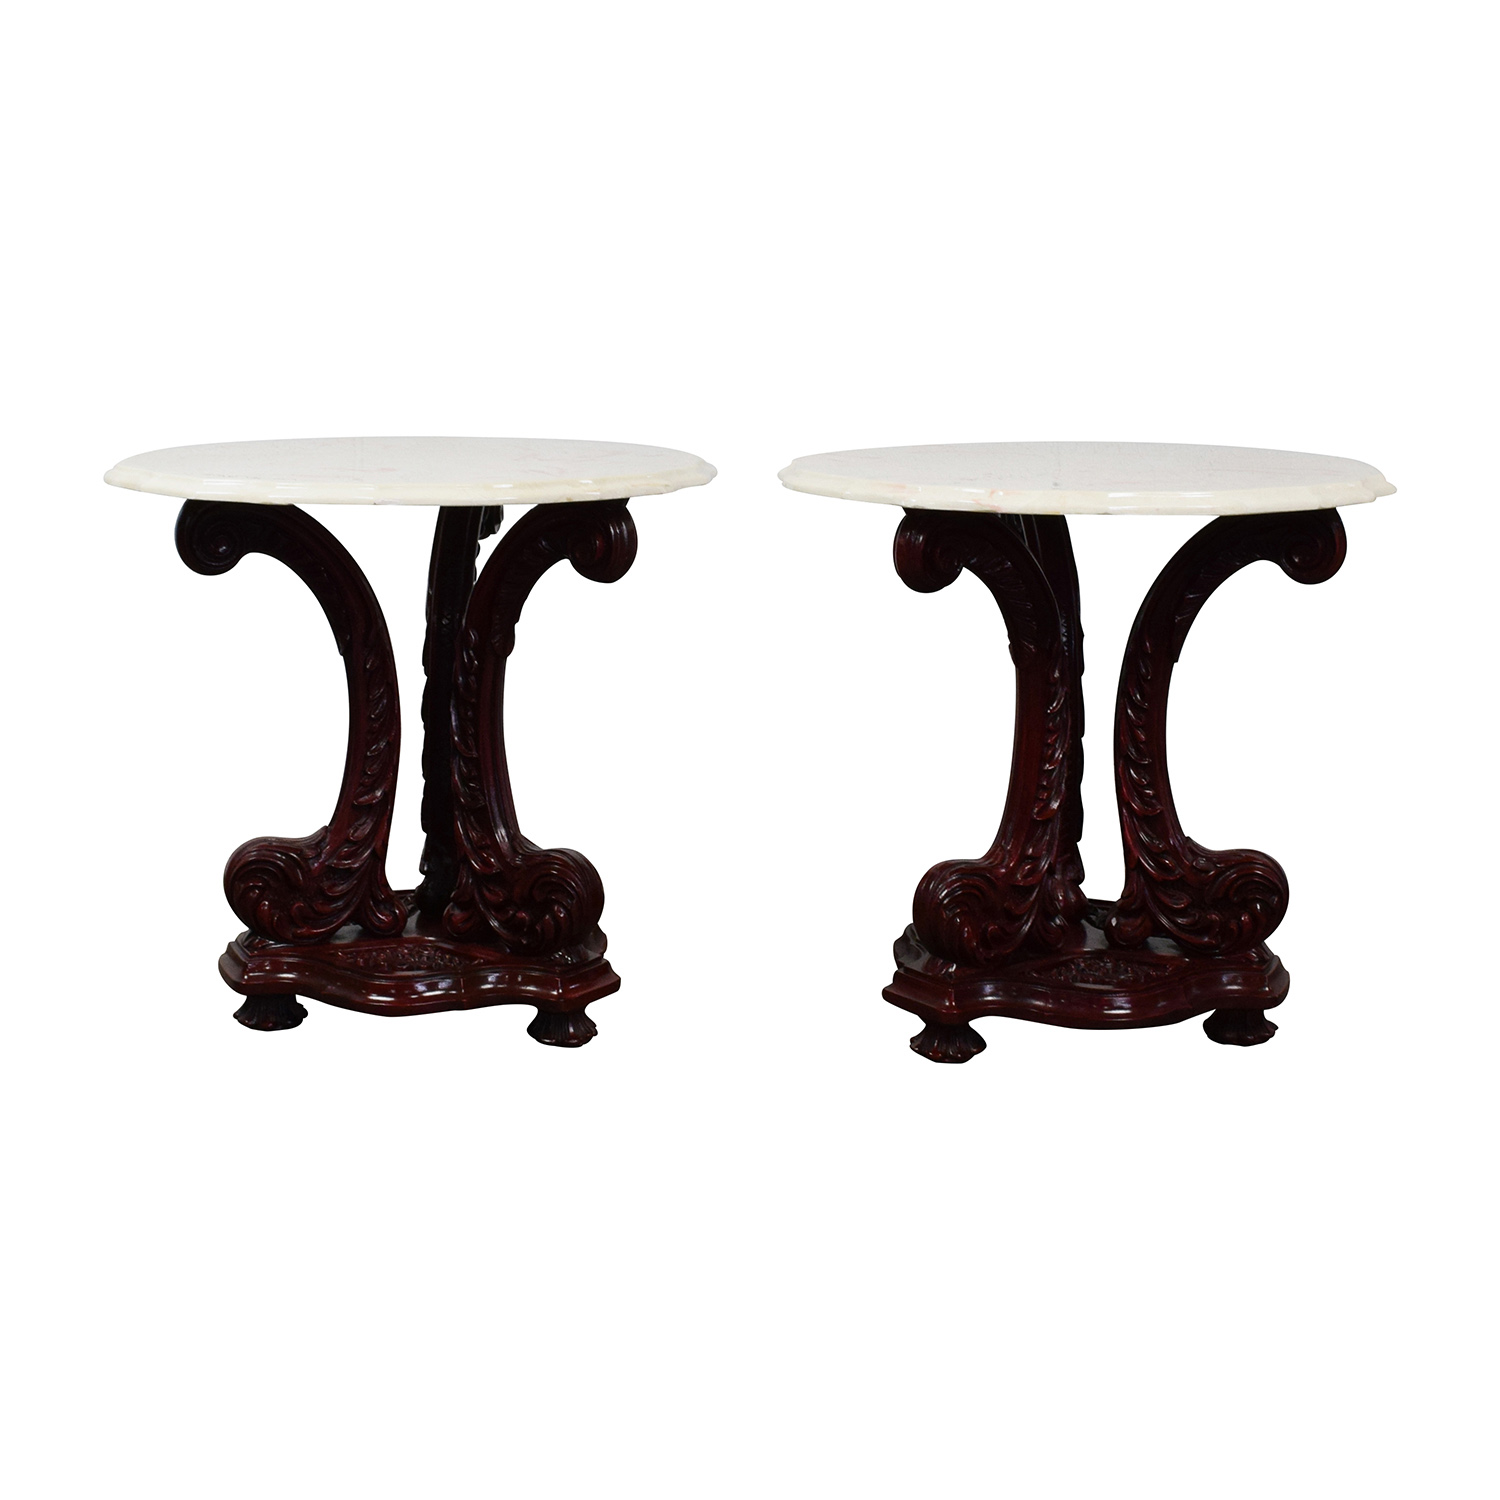 marble top end tables 78% OFF   Marble Top End Tables with Burgundy Wood Base / Tables marble top end tables